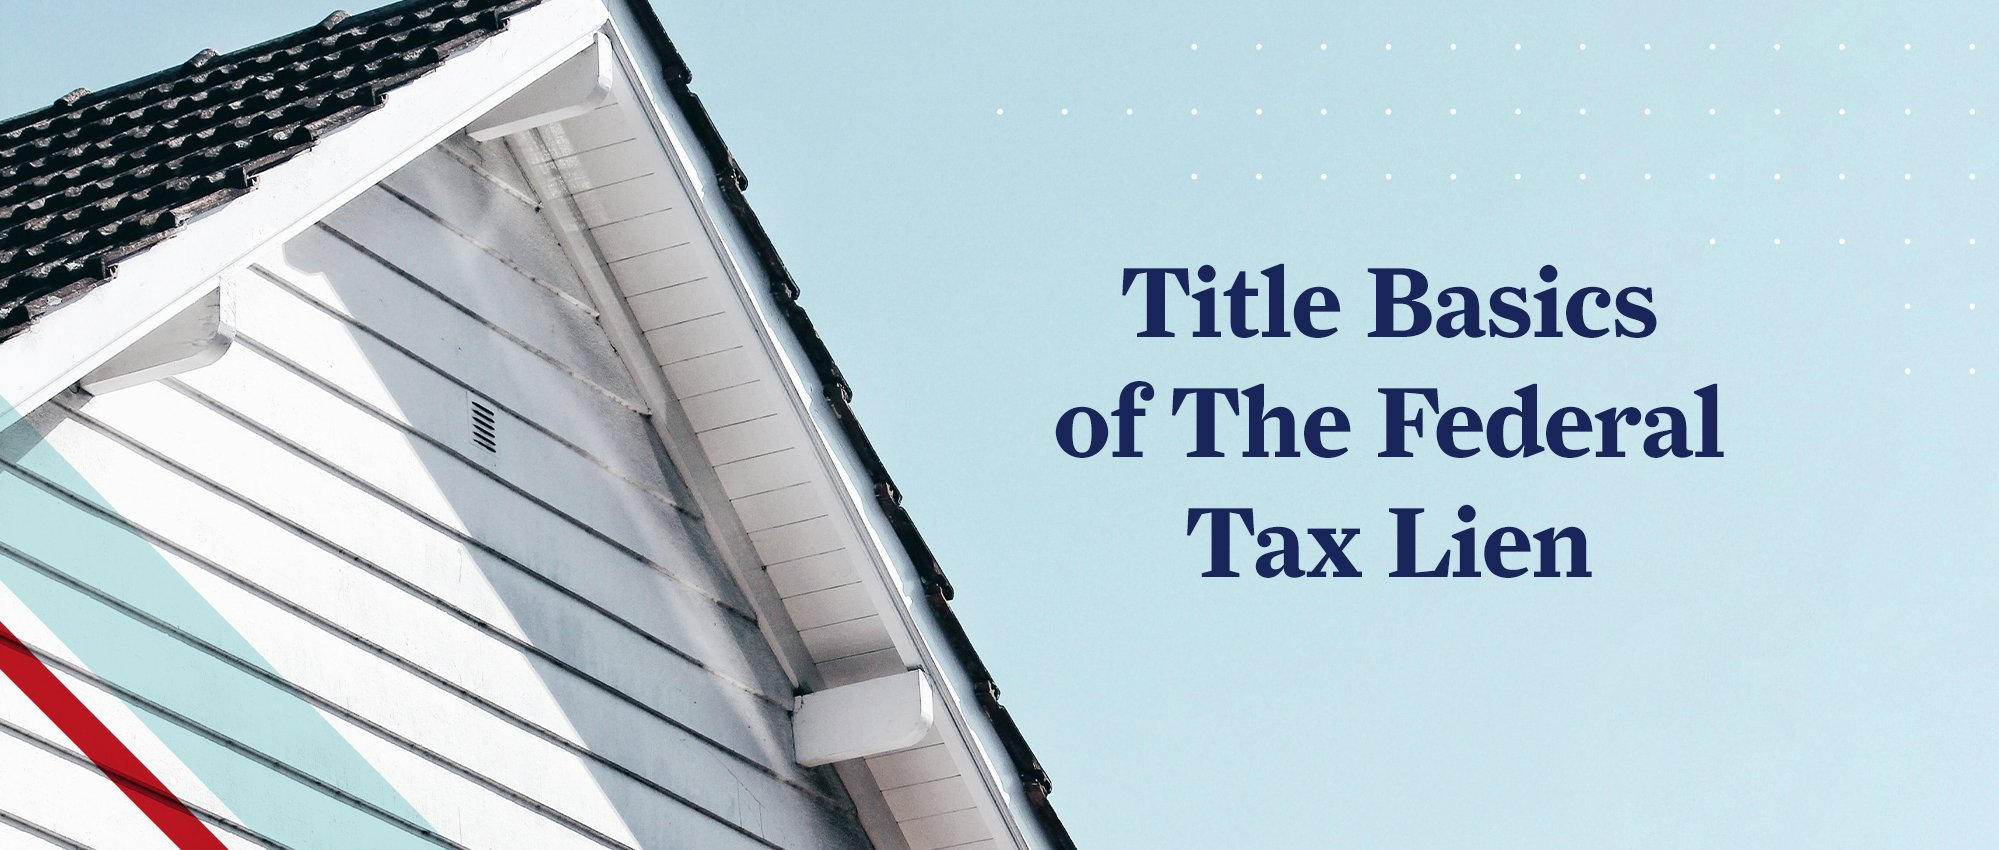 Title Basics of the Federal Tax Lien - Background image of a Beach House